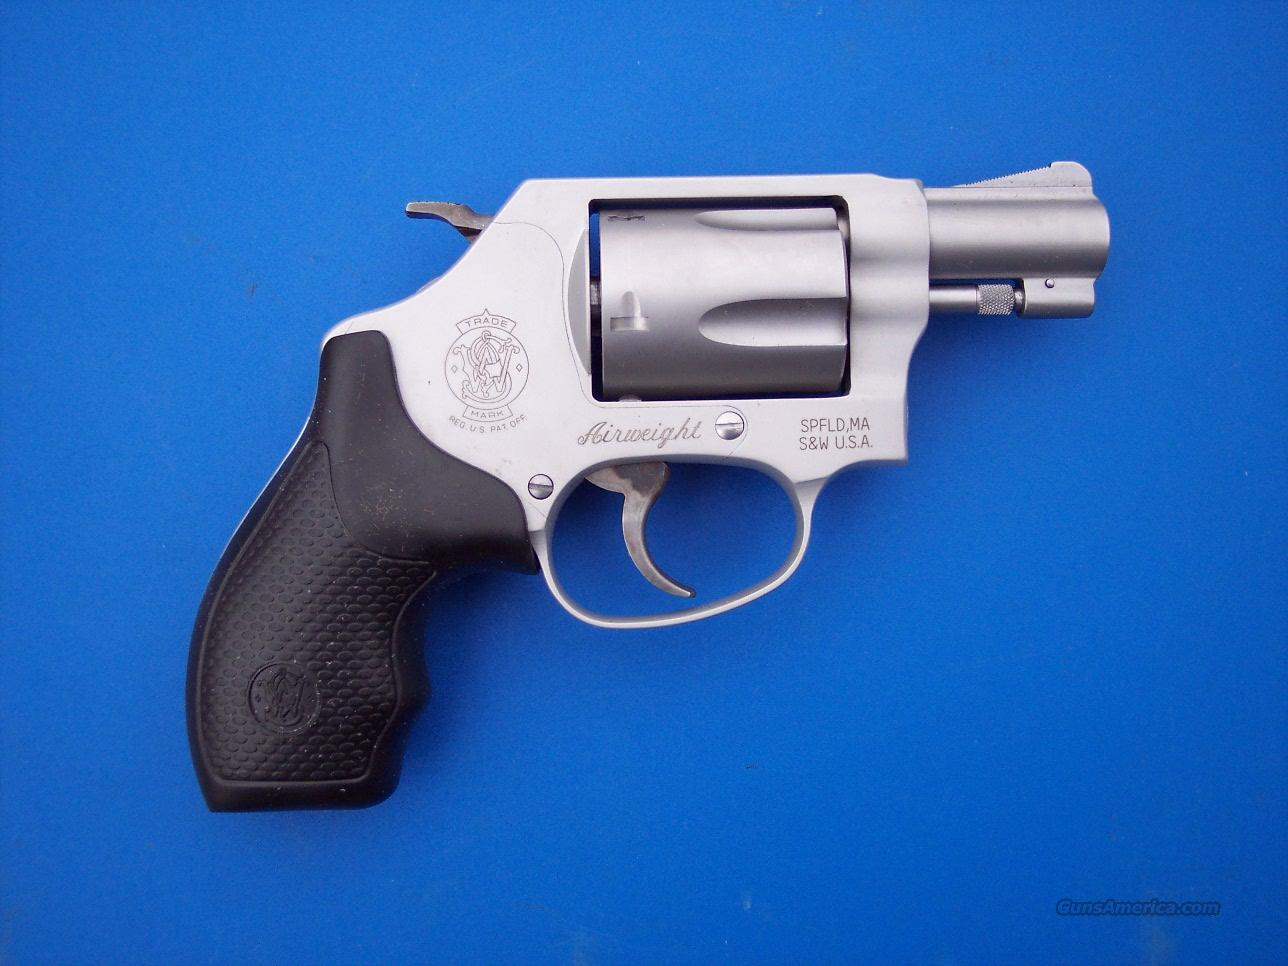 Smith & Wesson 637 Airweight 38+P *NEW  Guns > Pistols > Smith & Wesson Revolvers > Pocket Pistols